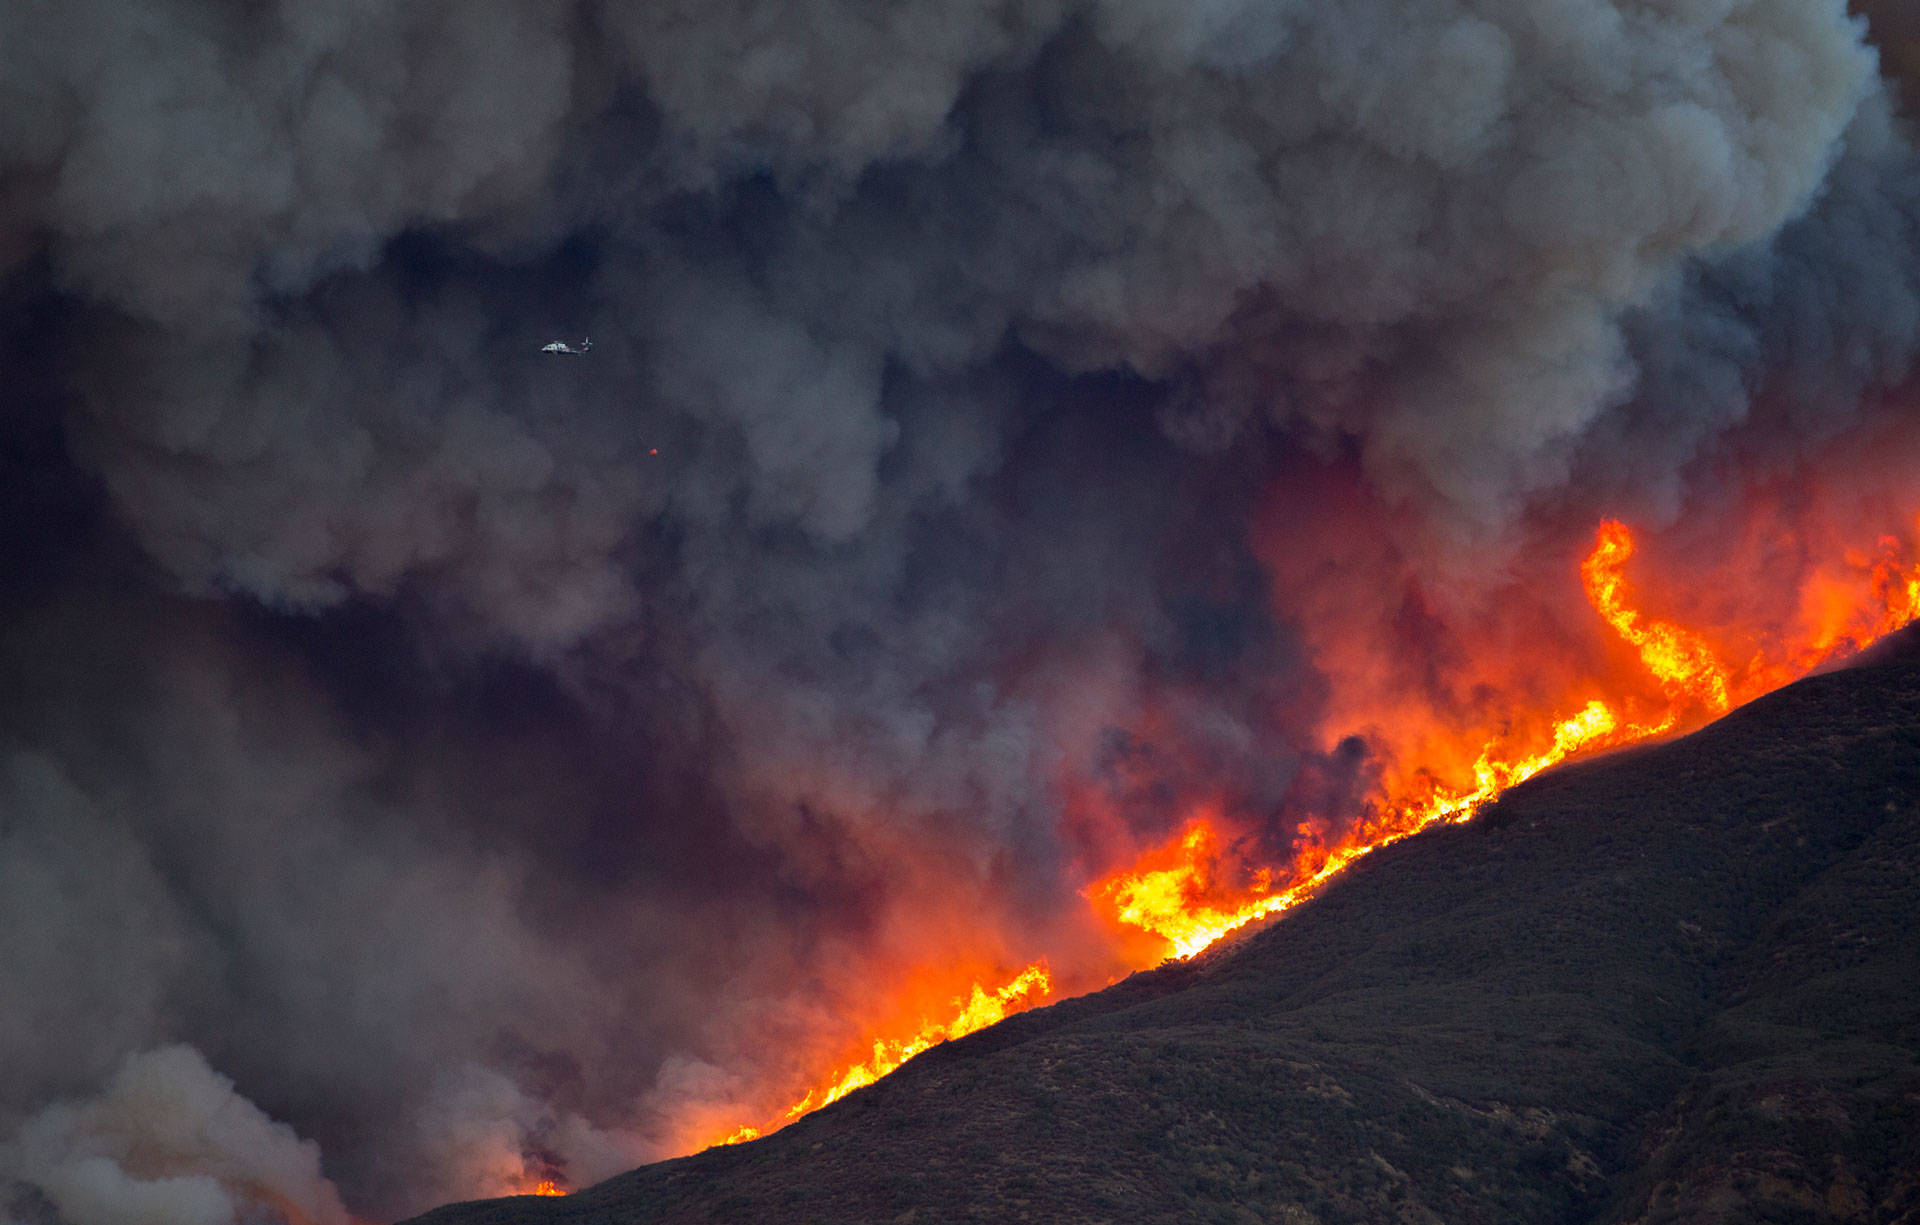 A firefighting helicopter is dwarfed by smoke and flames during Thomas Fire on December 7, 2017. A new PPIC poll found 85 percent of the state's voters are concerned that the effects of global warming could spark more dangerous wildfires. David McNew/Getty Images